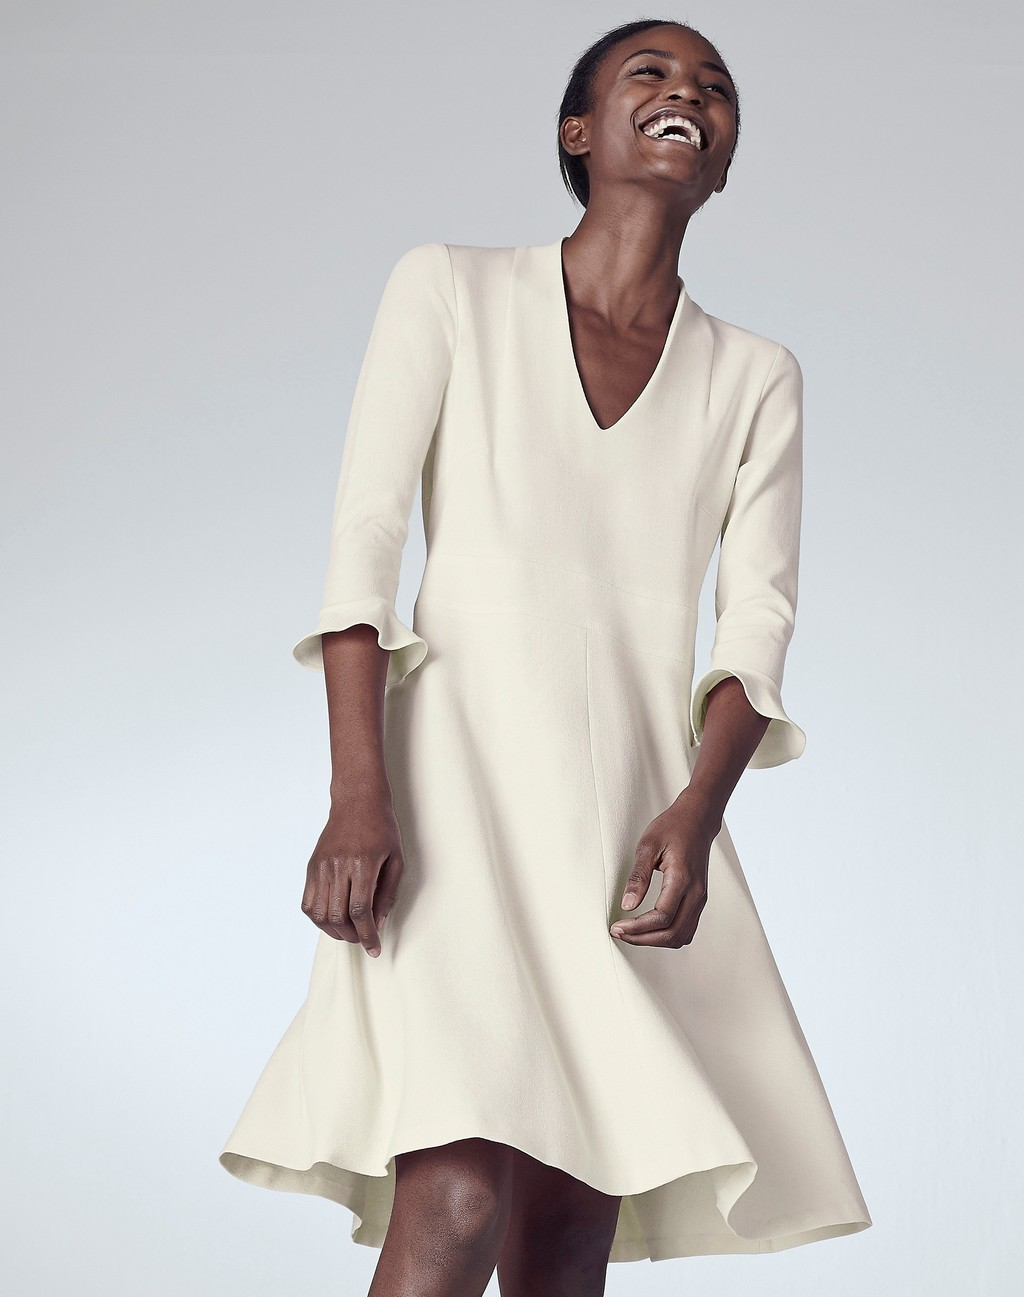 V Neck Flippy Dress Cream - style: trapeze; neckline: v-neck; fit: loose; pattern: plain; sleeve style: trumpet; predominant colour: ivory/cream; occasions: evening; length: just above the knee; fibres: wool - 100%; sleeve length: 3/4 length; texture group: crepes; pattern type: fabric; season: s/s 2016; wardrobe: event